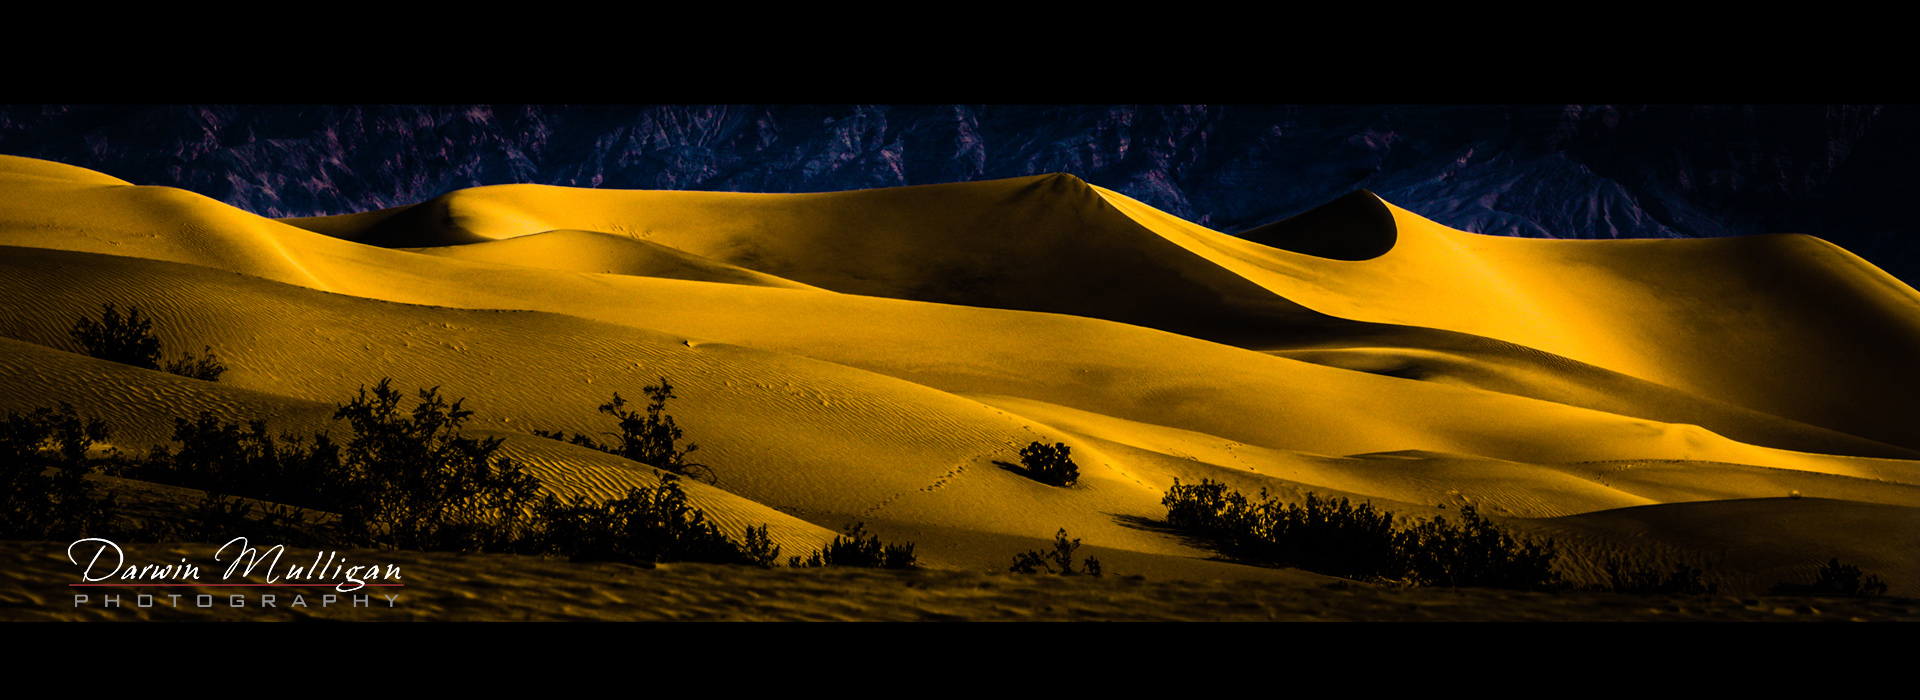 Sunset-Sand-Dunes-near-Stovepipe-Wells-Death-Valley-National-Park-California